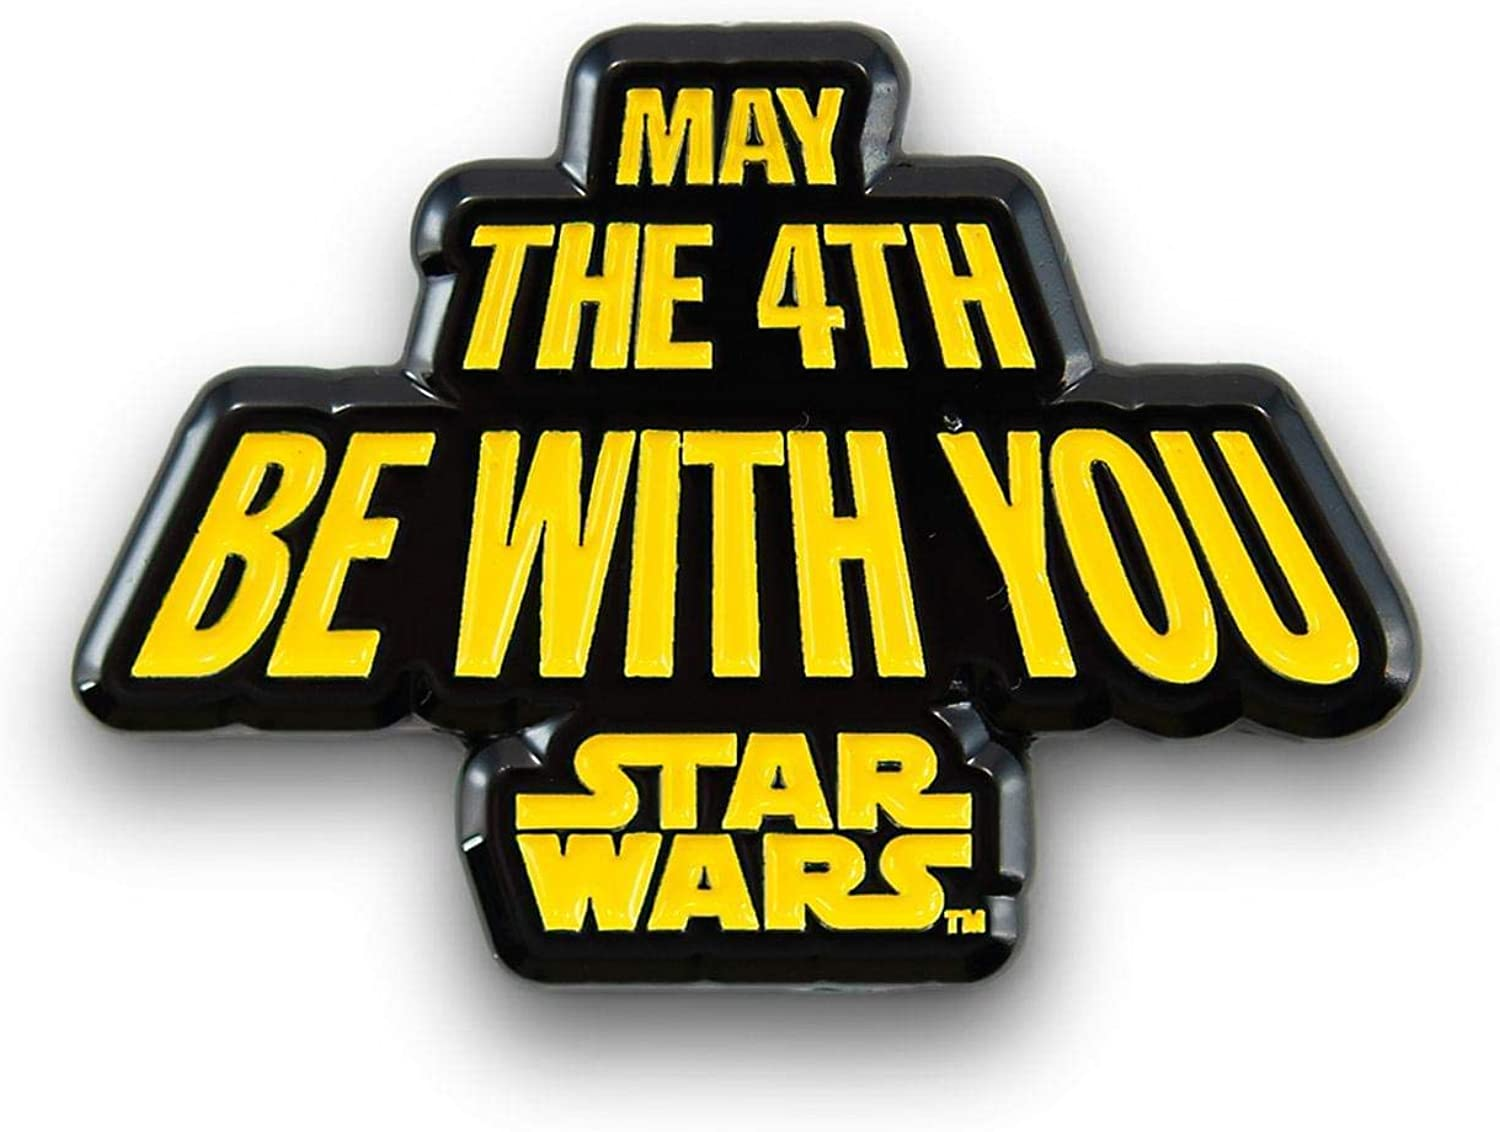 Amazon.com: Star Wars May The Fourth Be With You Pin | Enamel Star Wars  Collector Pin | Fun May 4th Star Wars Accessory: Clothing